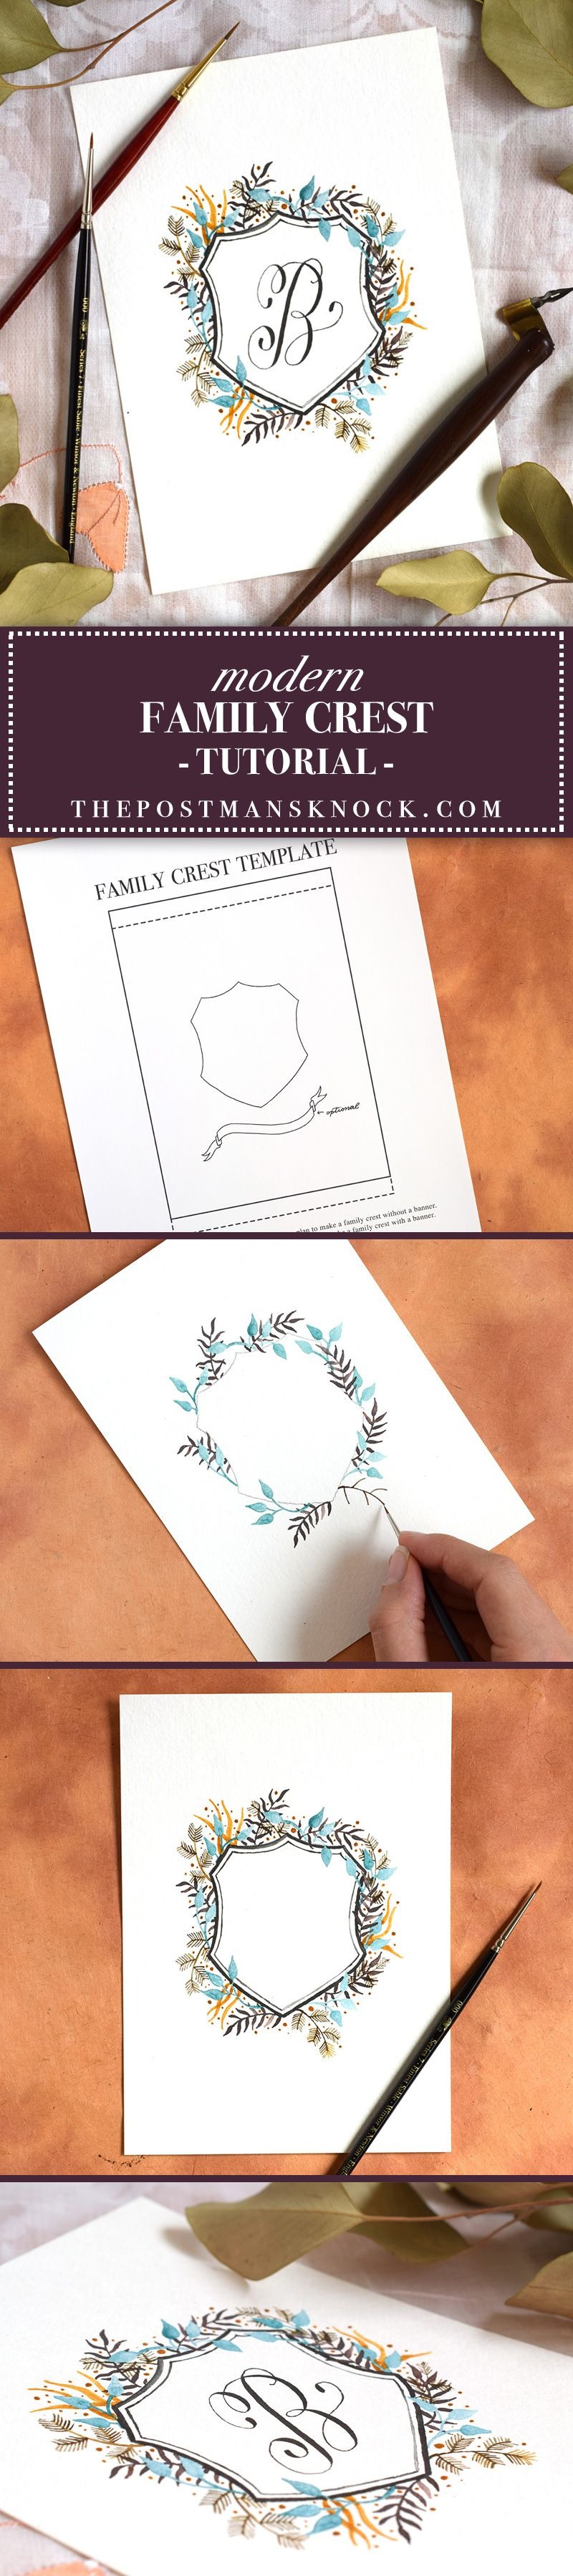 Modern Family Crest Tutorial Freebies From The Tpk Blog